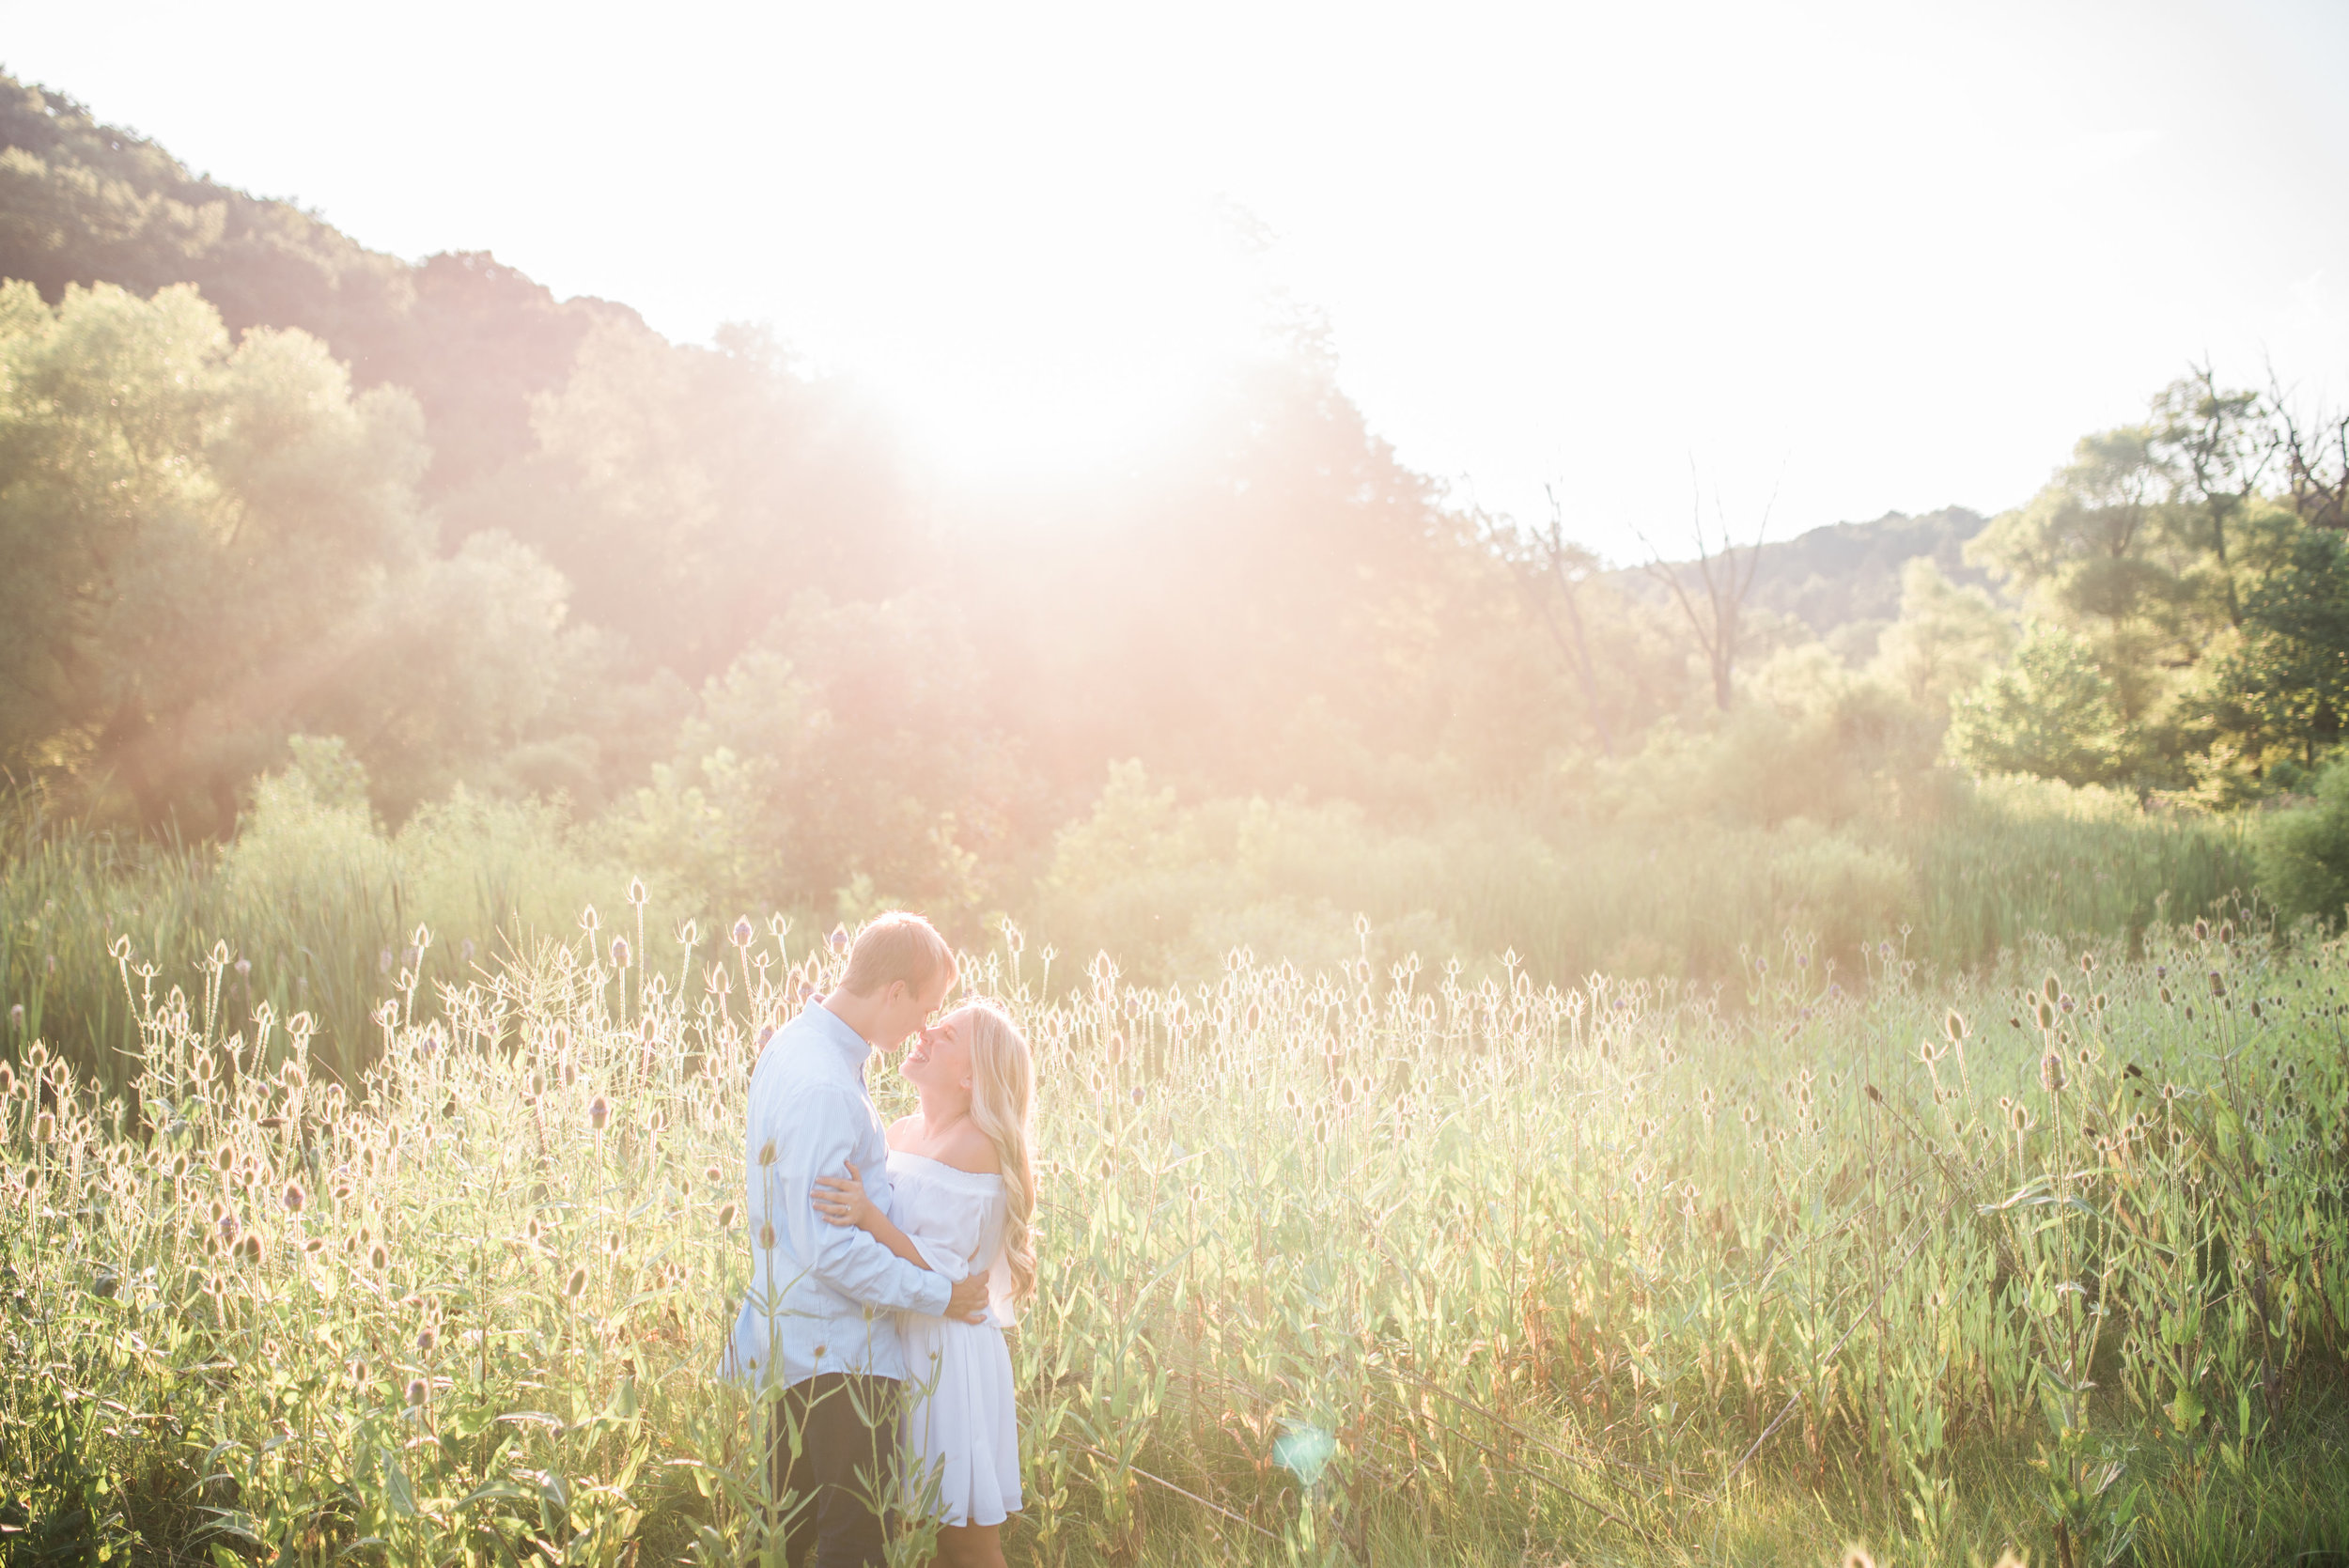 Engagement Session Pittsburgh Photographer, Think About Your Wardrobe